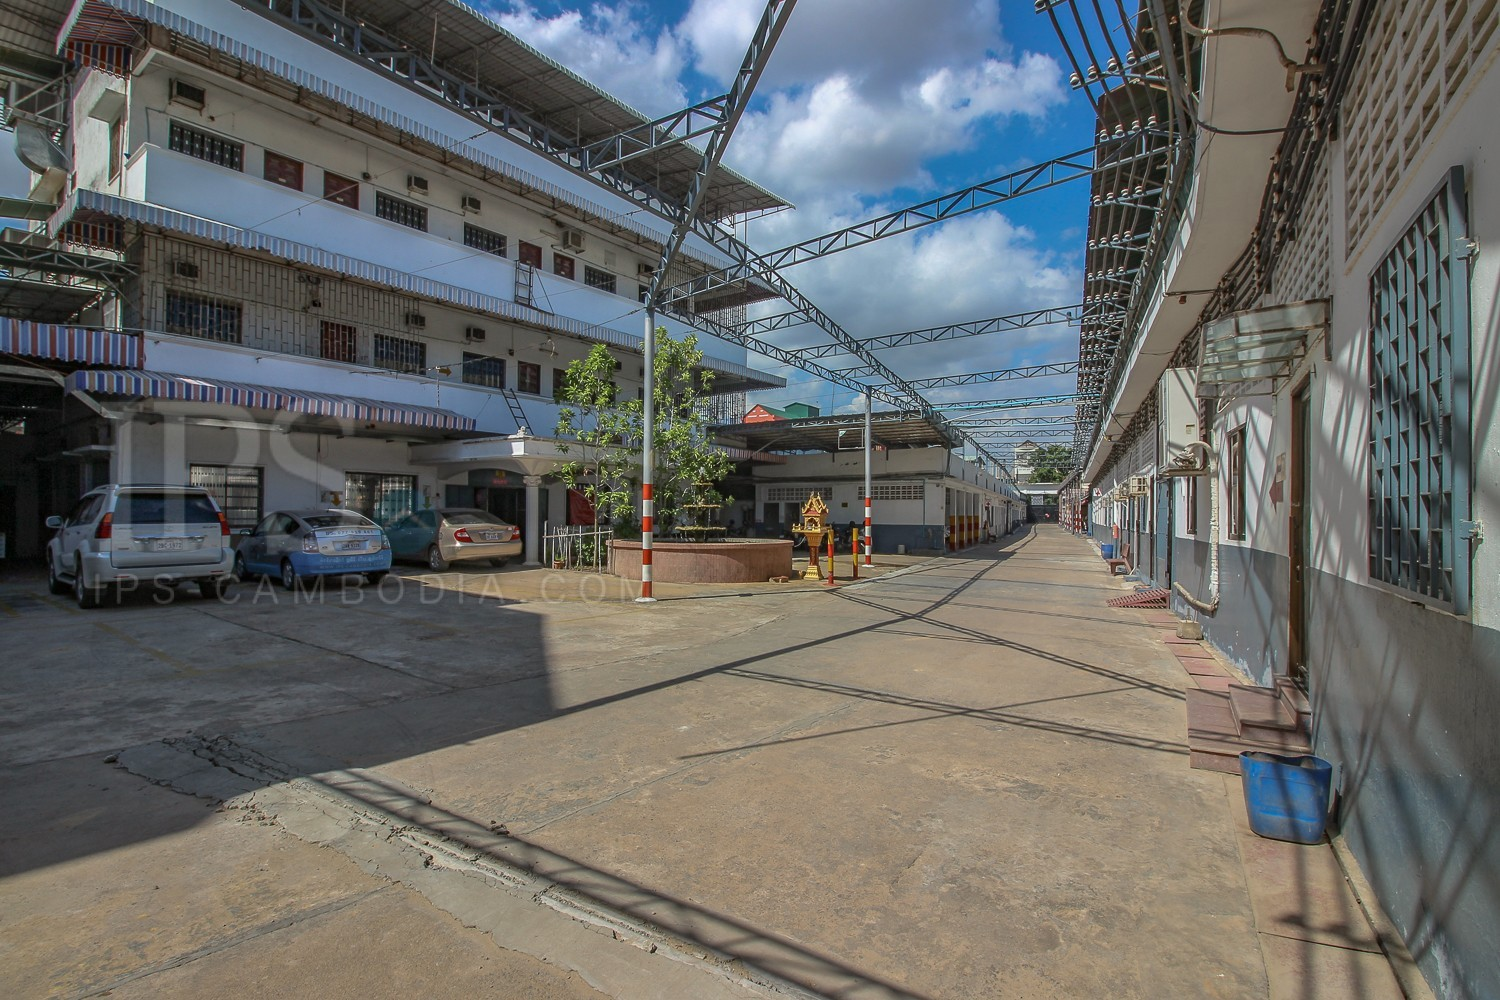 264 Sqm Warehouse For Rent - Khan Meanchey, Phnom Penh